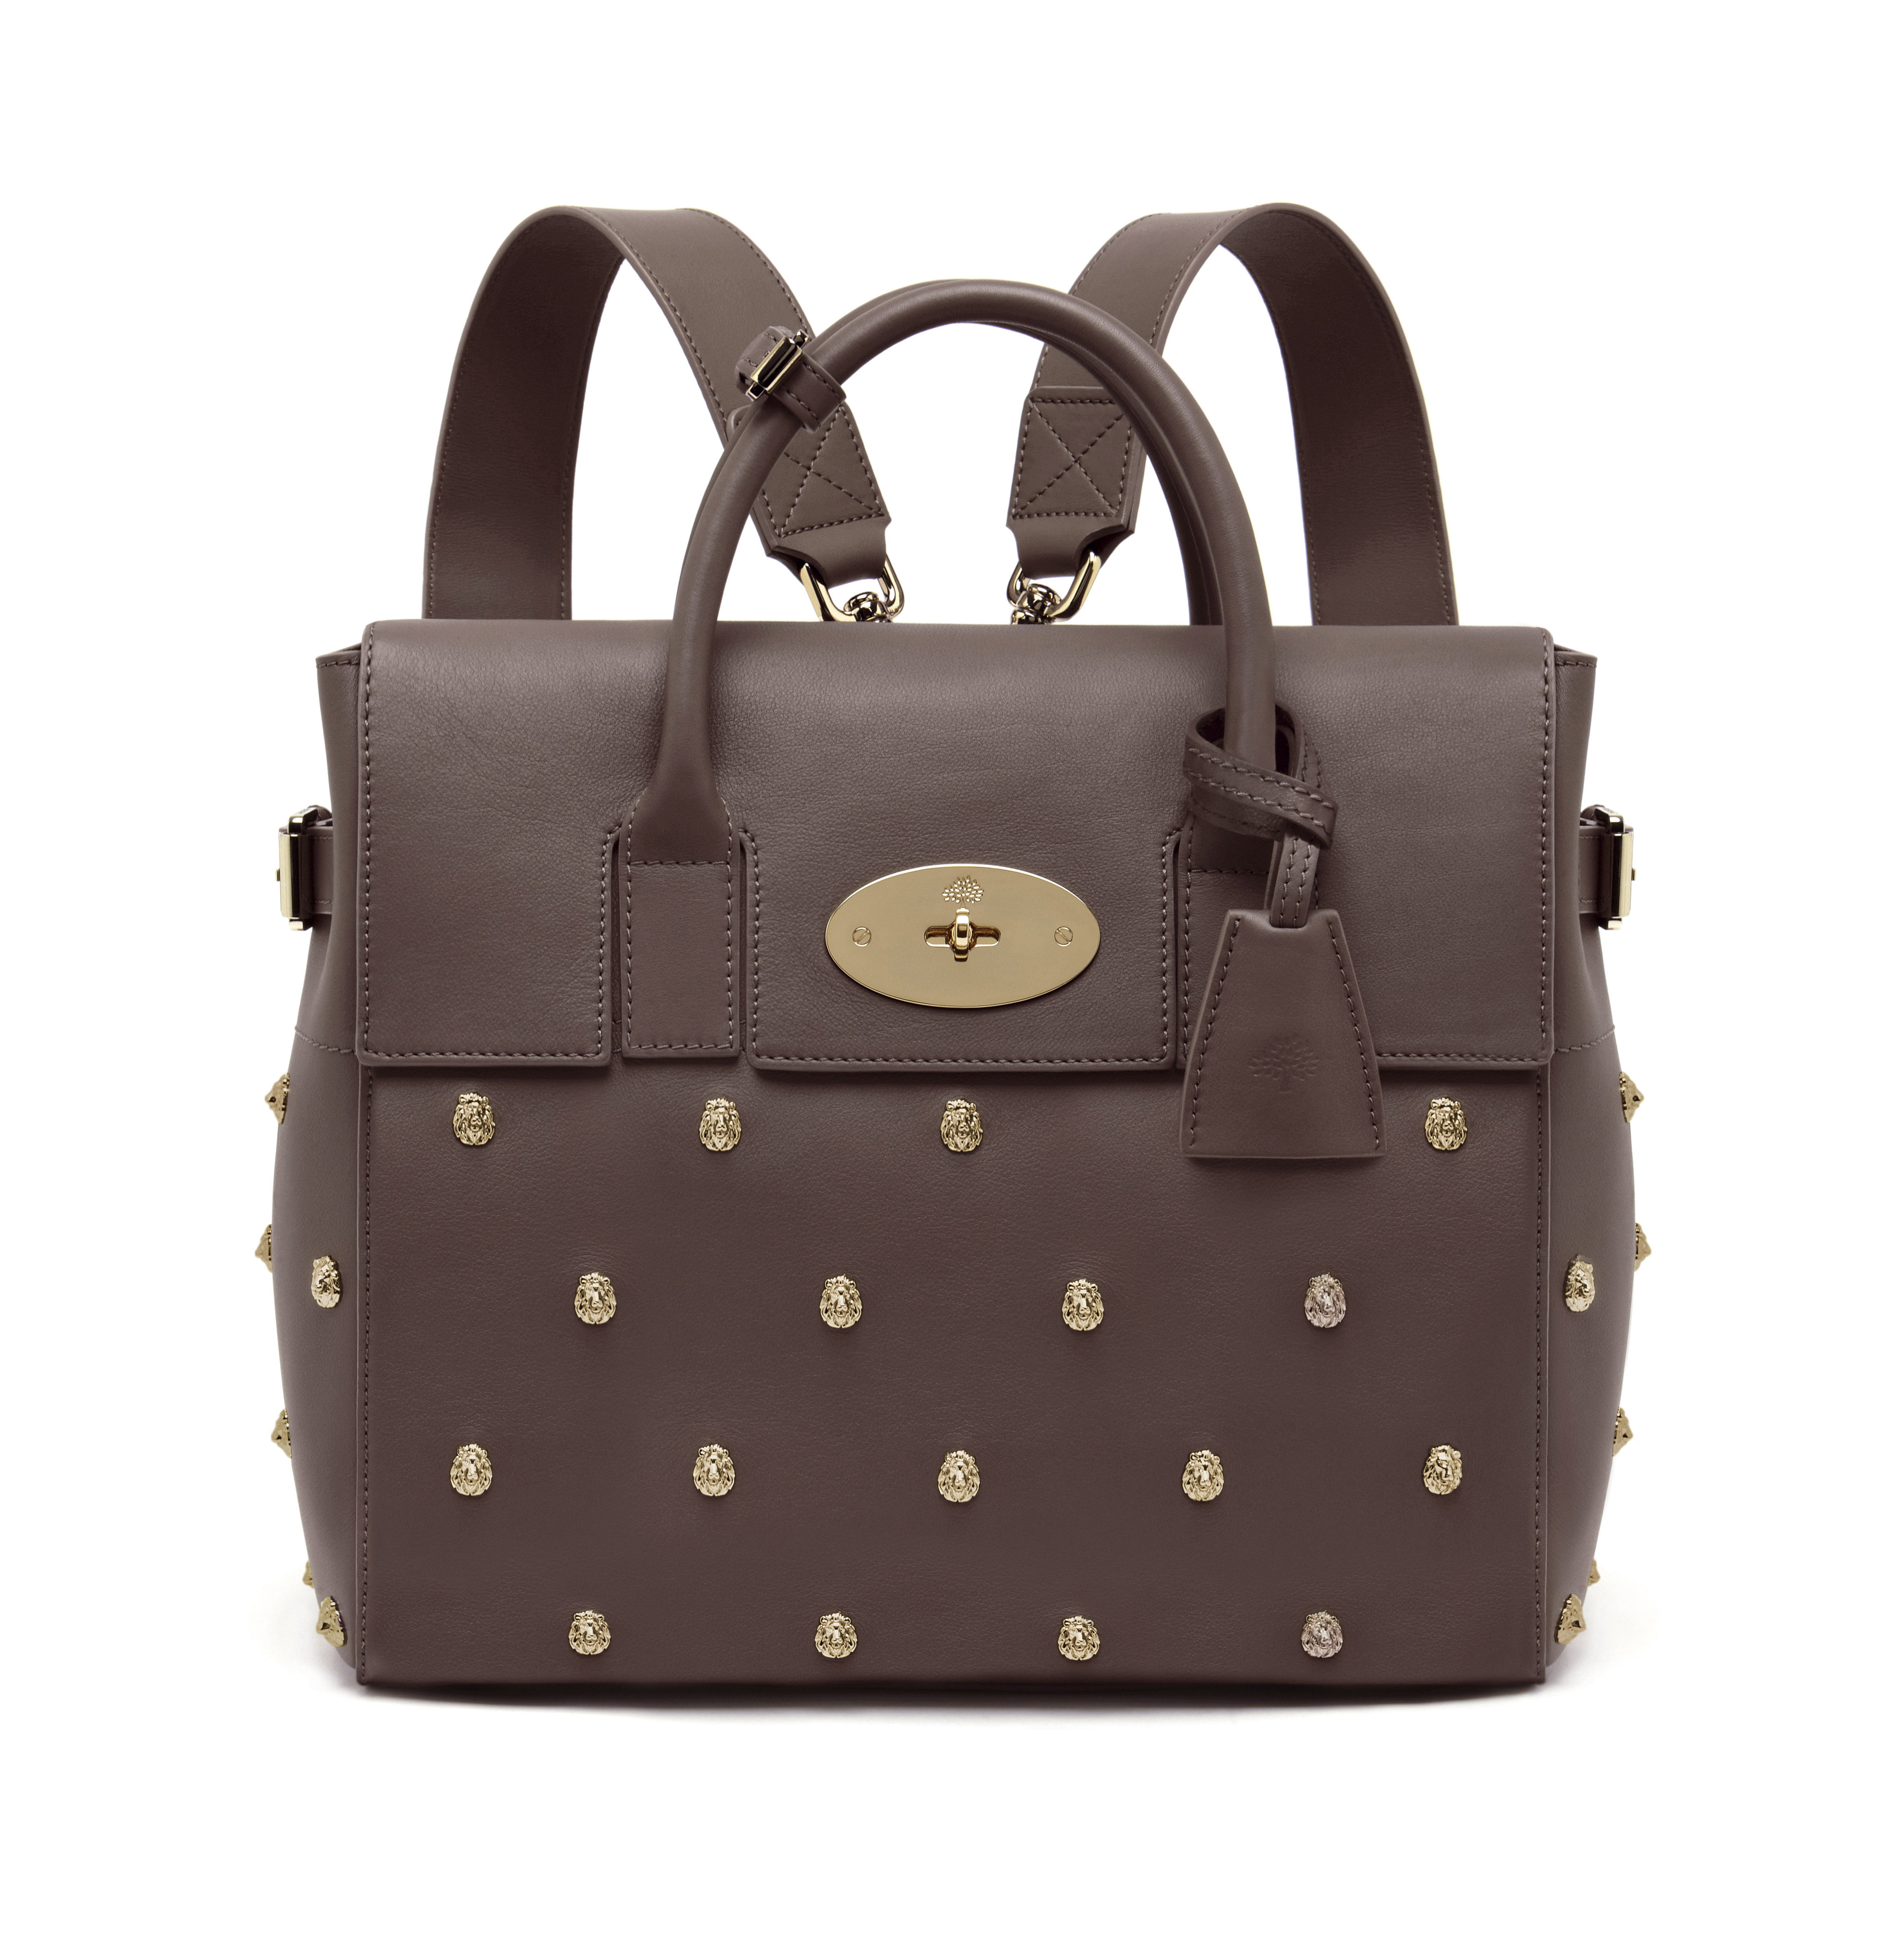 Cara Delevingne Bag in Taupe Lion Rivets